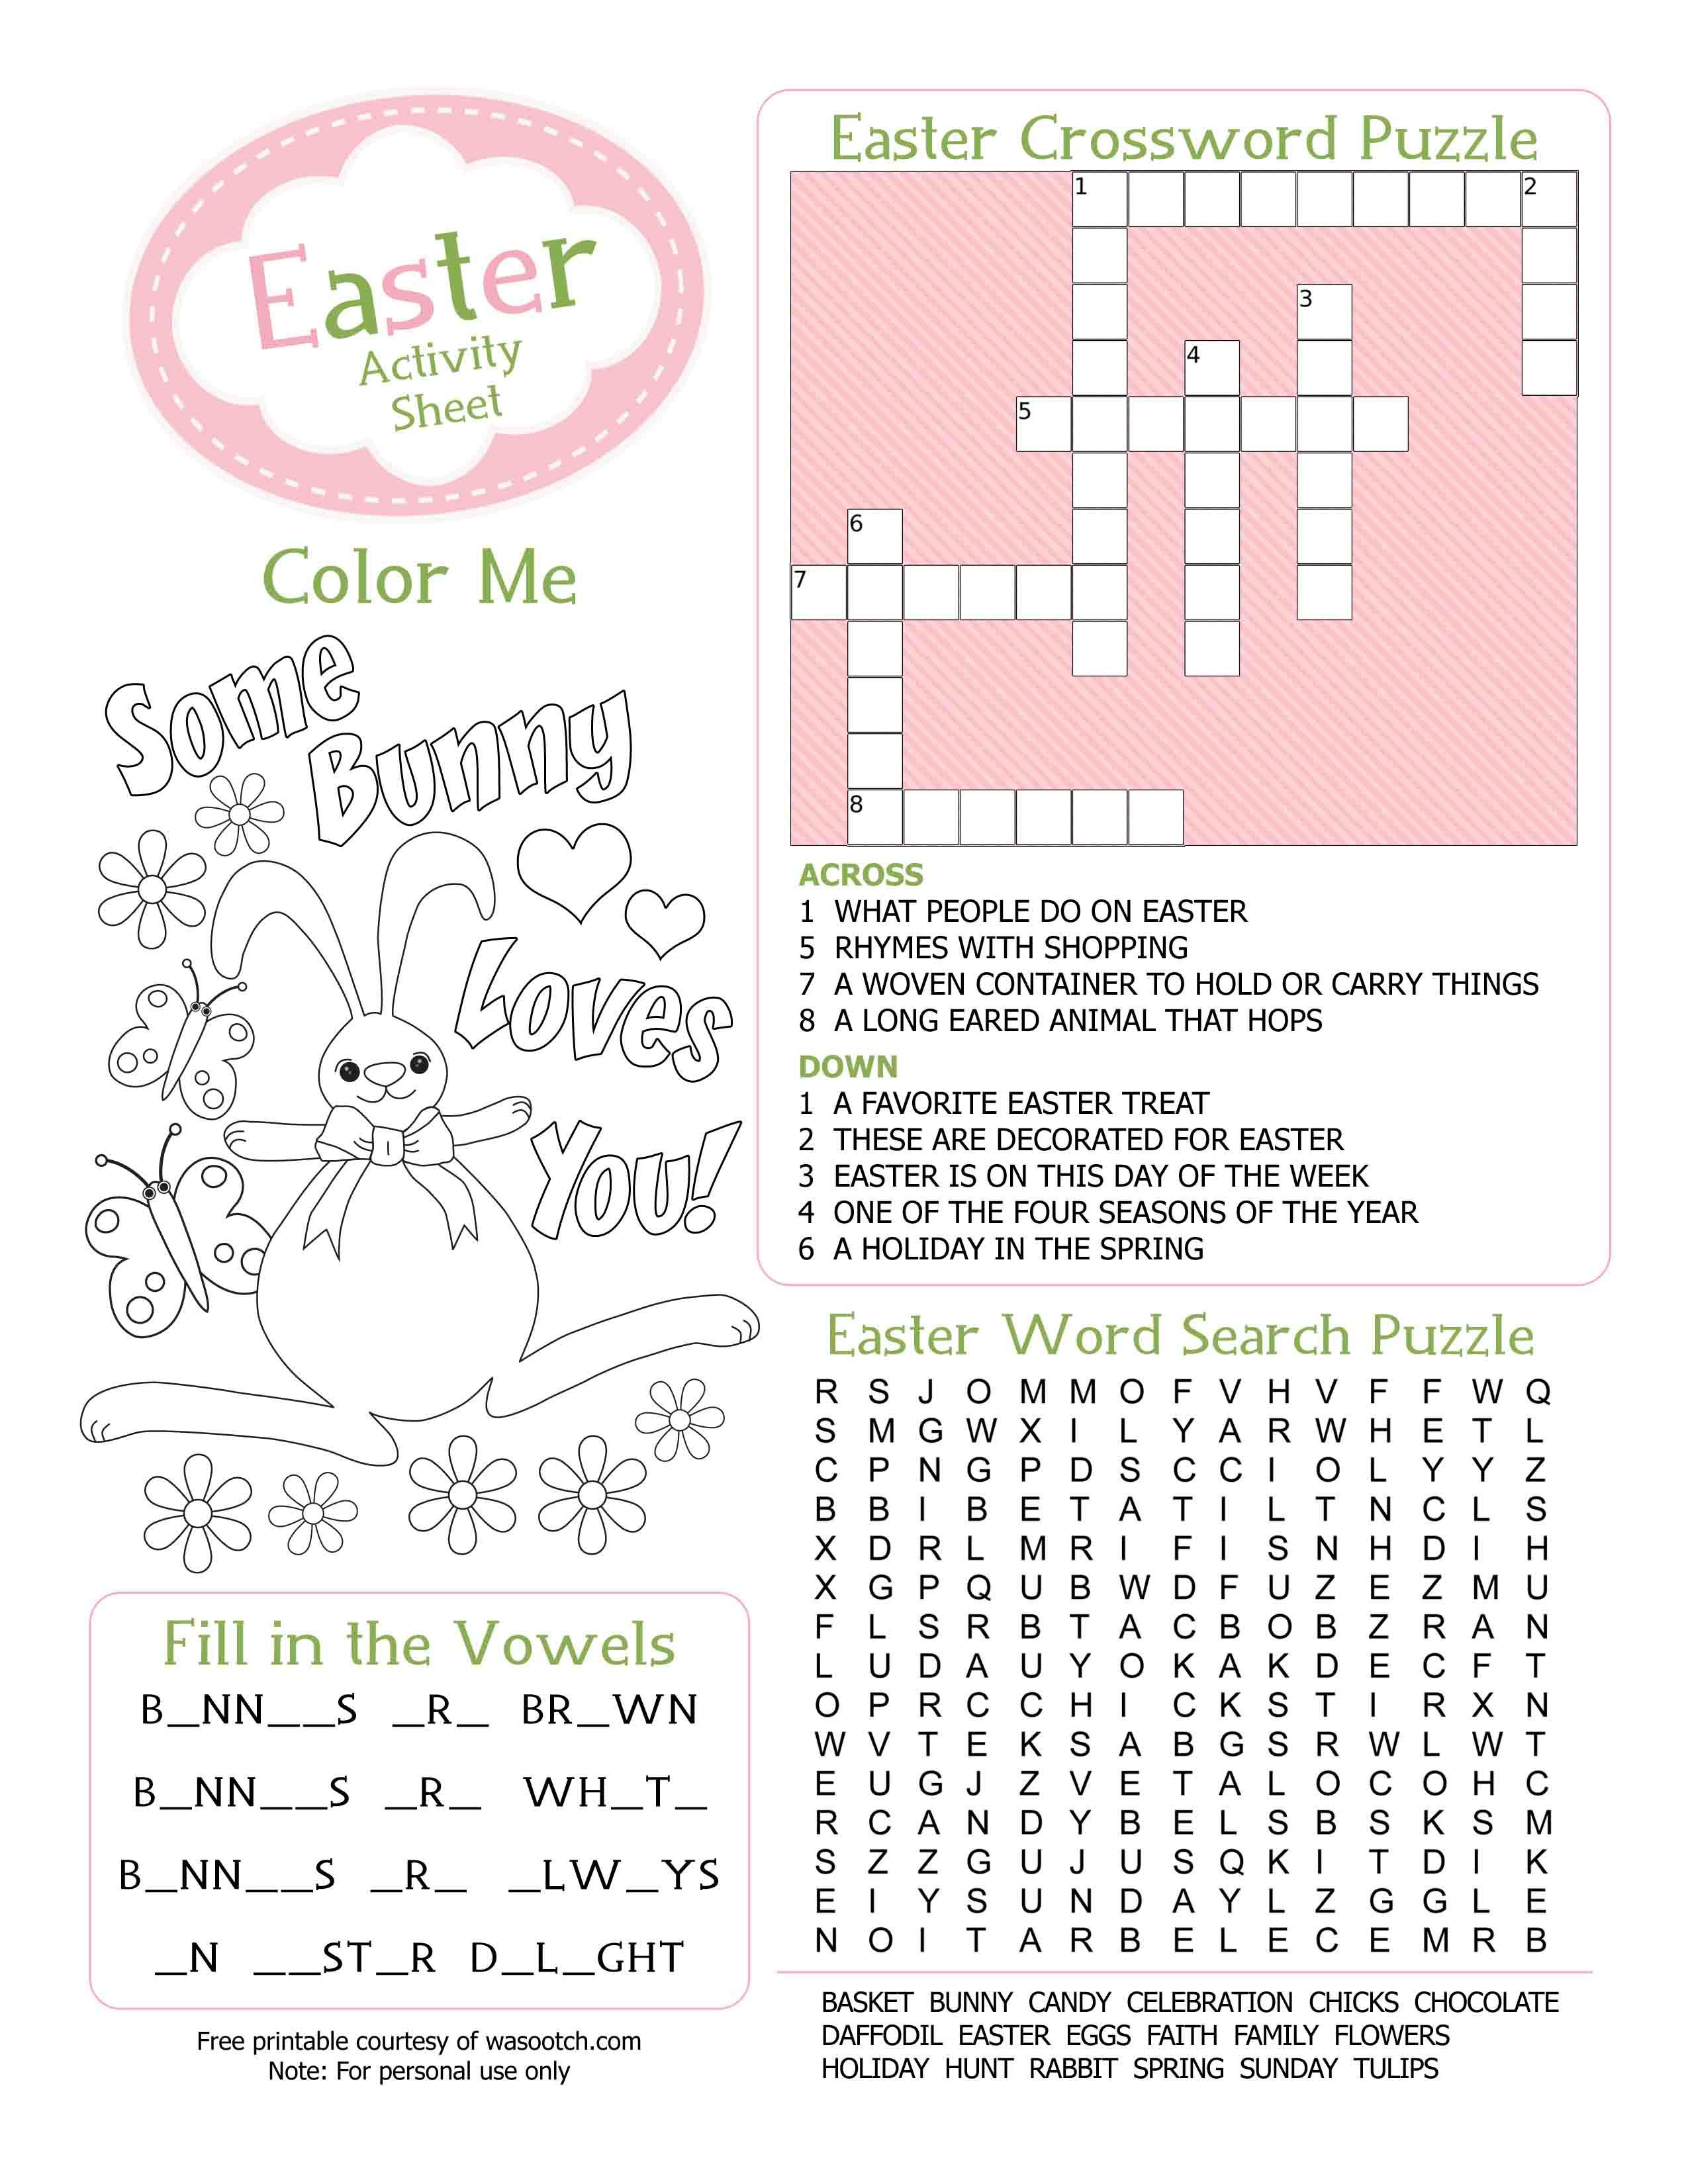 Easter Kid's Activity Sheet Free Printables Available @party - Easter Crossword Puzzle Printable Worksheets